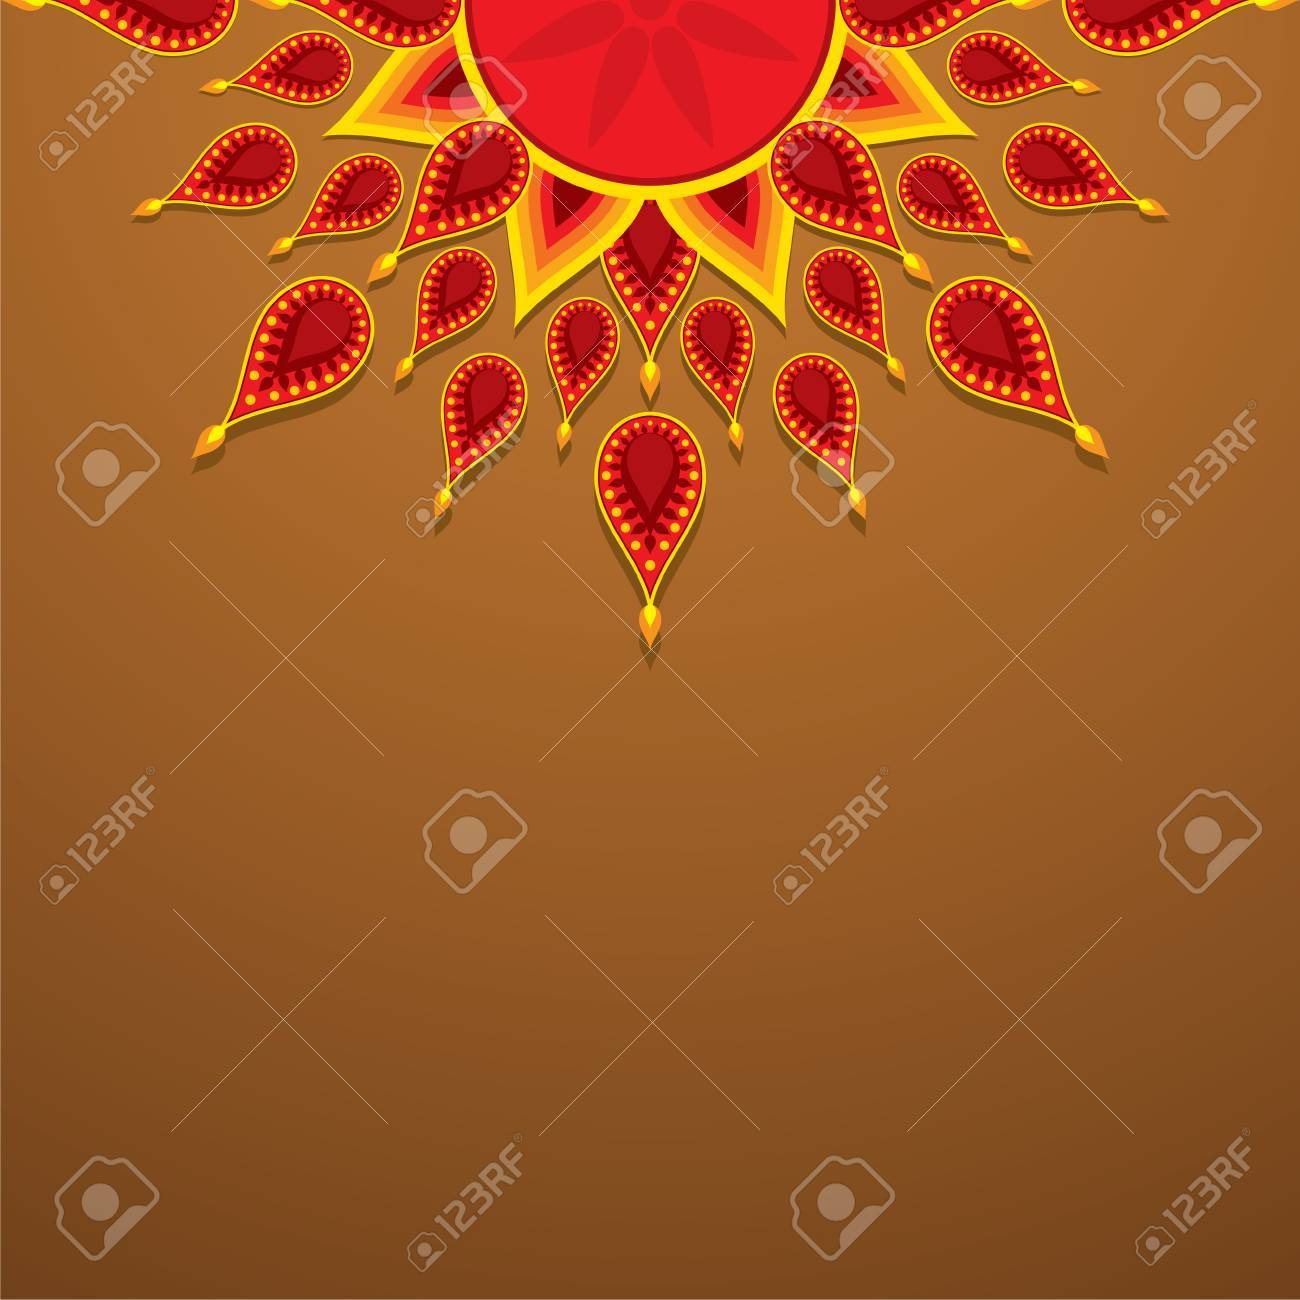 Creative diwali greeting design vector royalty free cliparts creative diwali greeting design vector stock vector 46135307 kristyandbryce Image collections